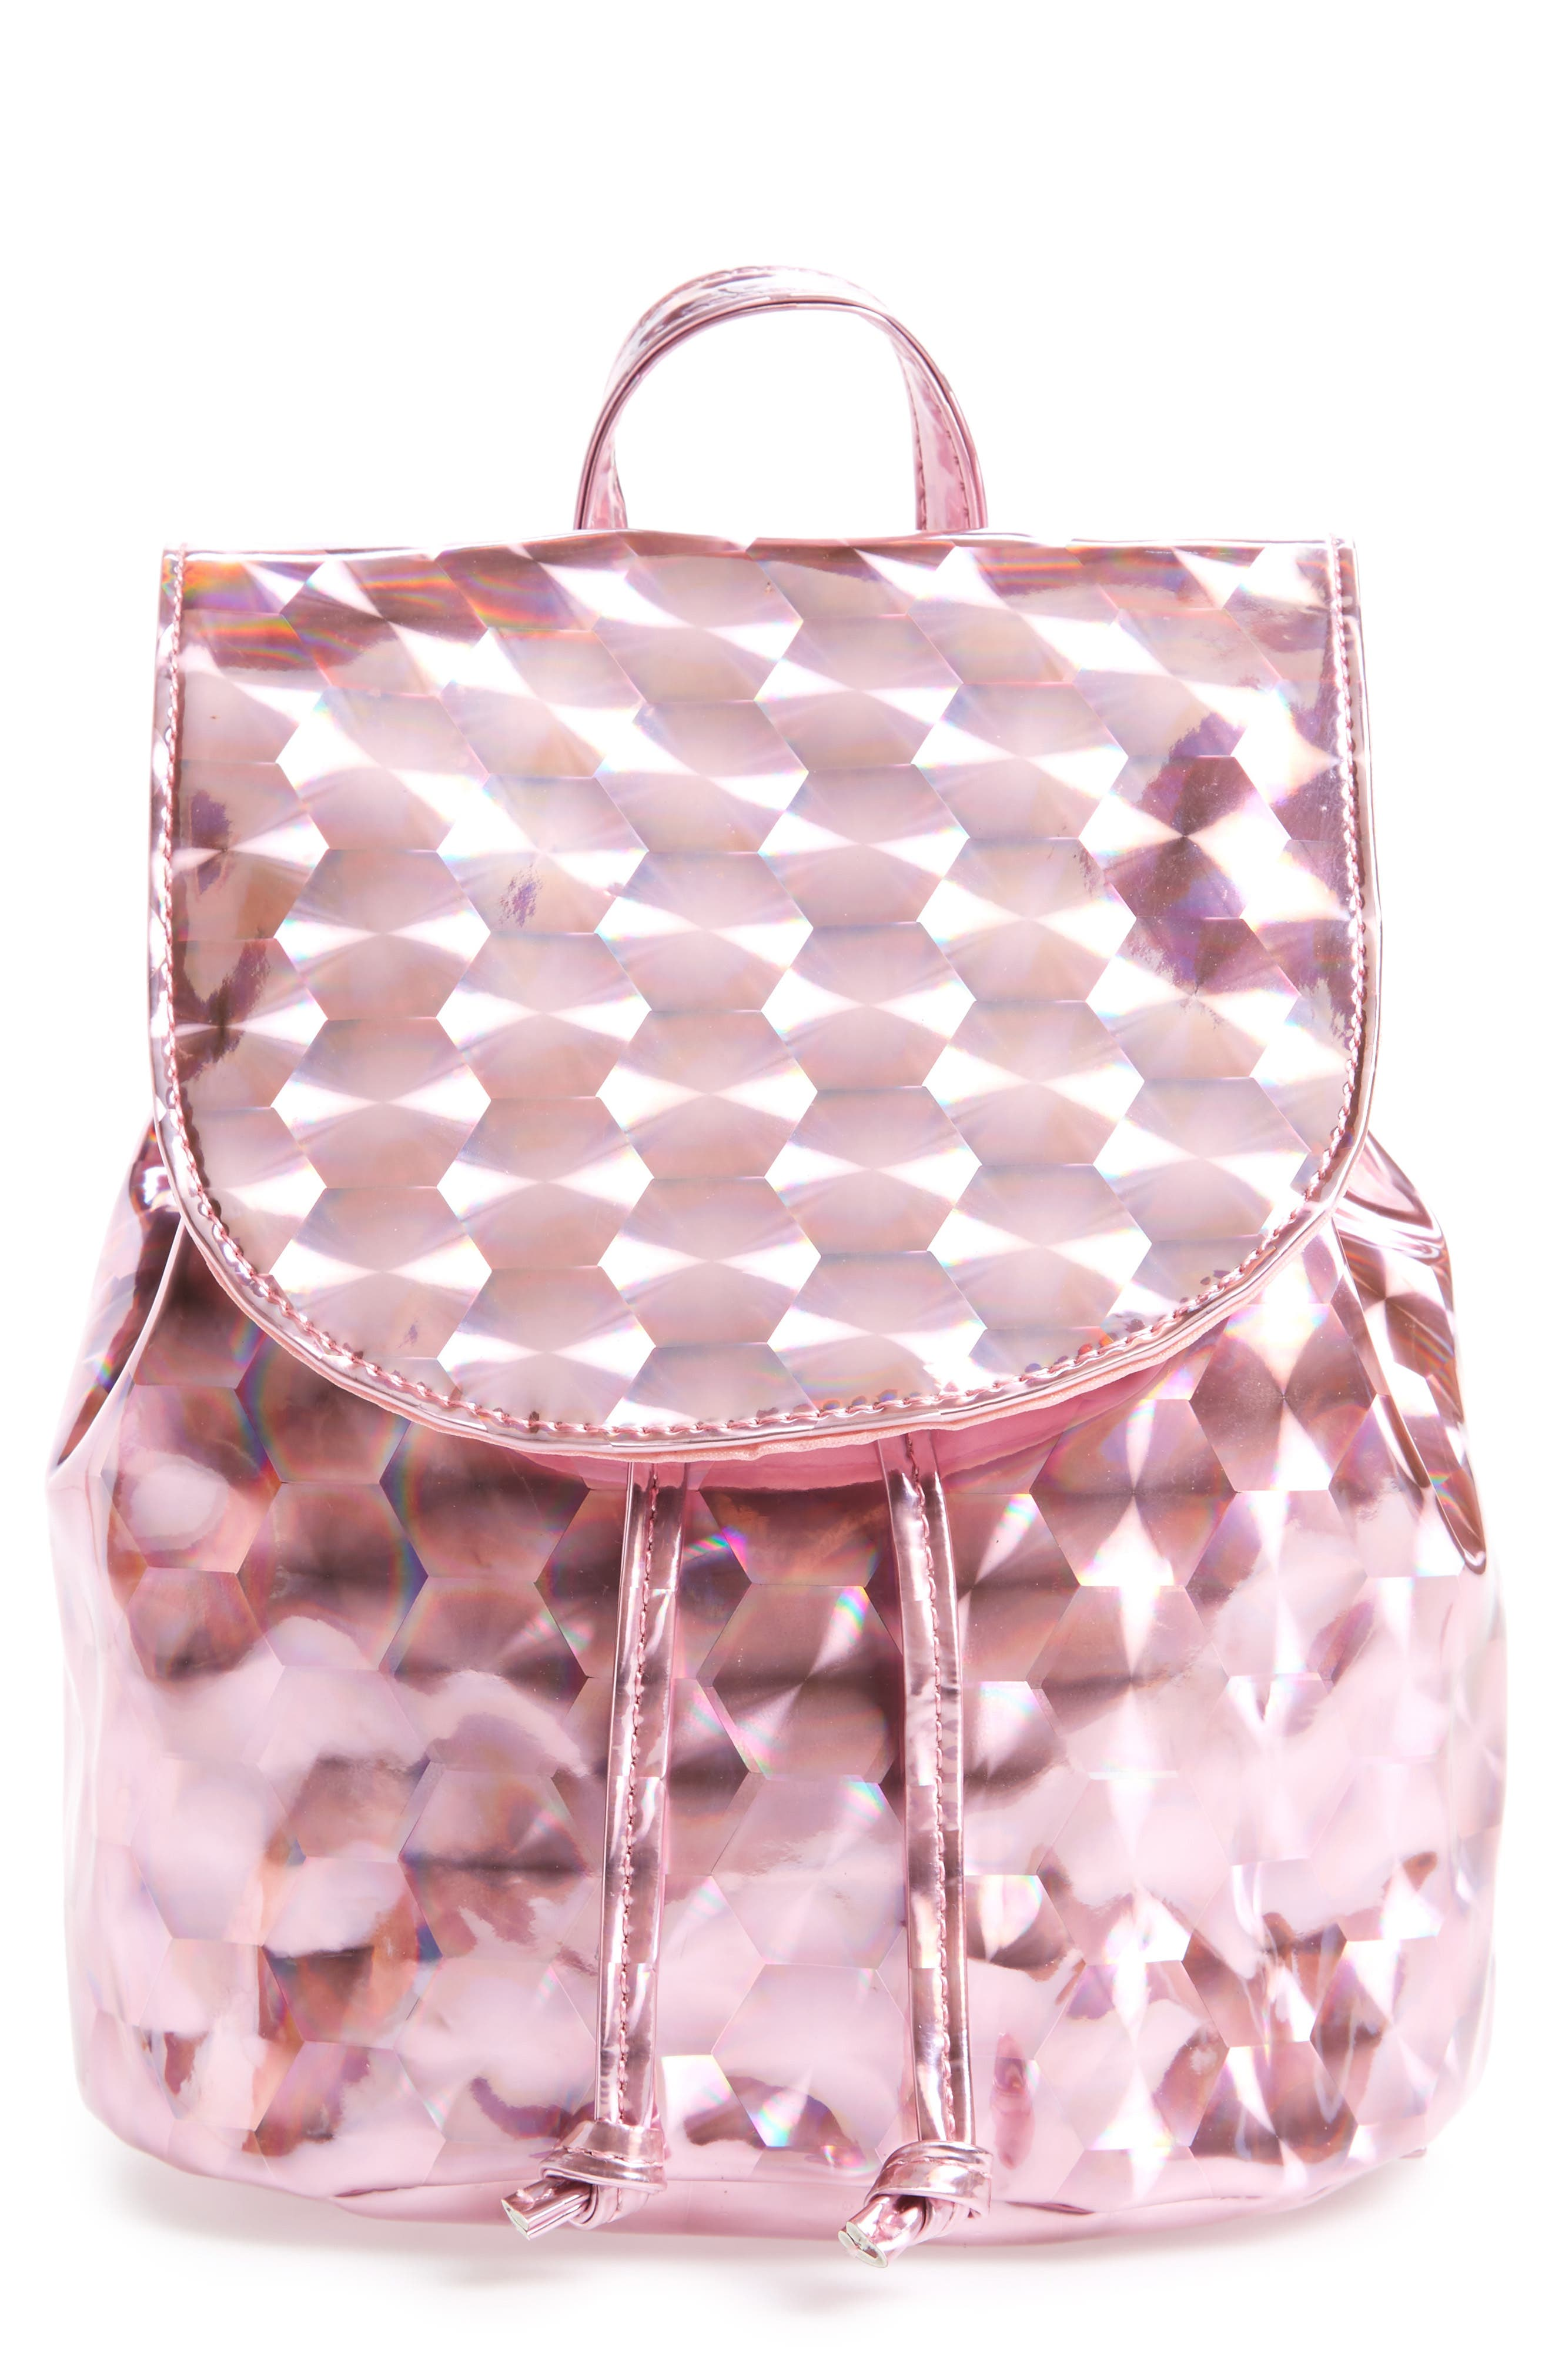 All Girls Accessories Handbags Jewelry & More